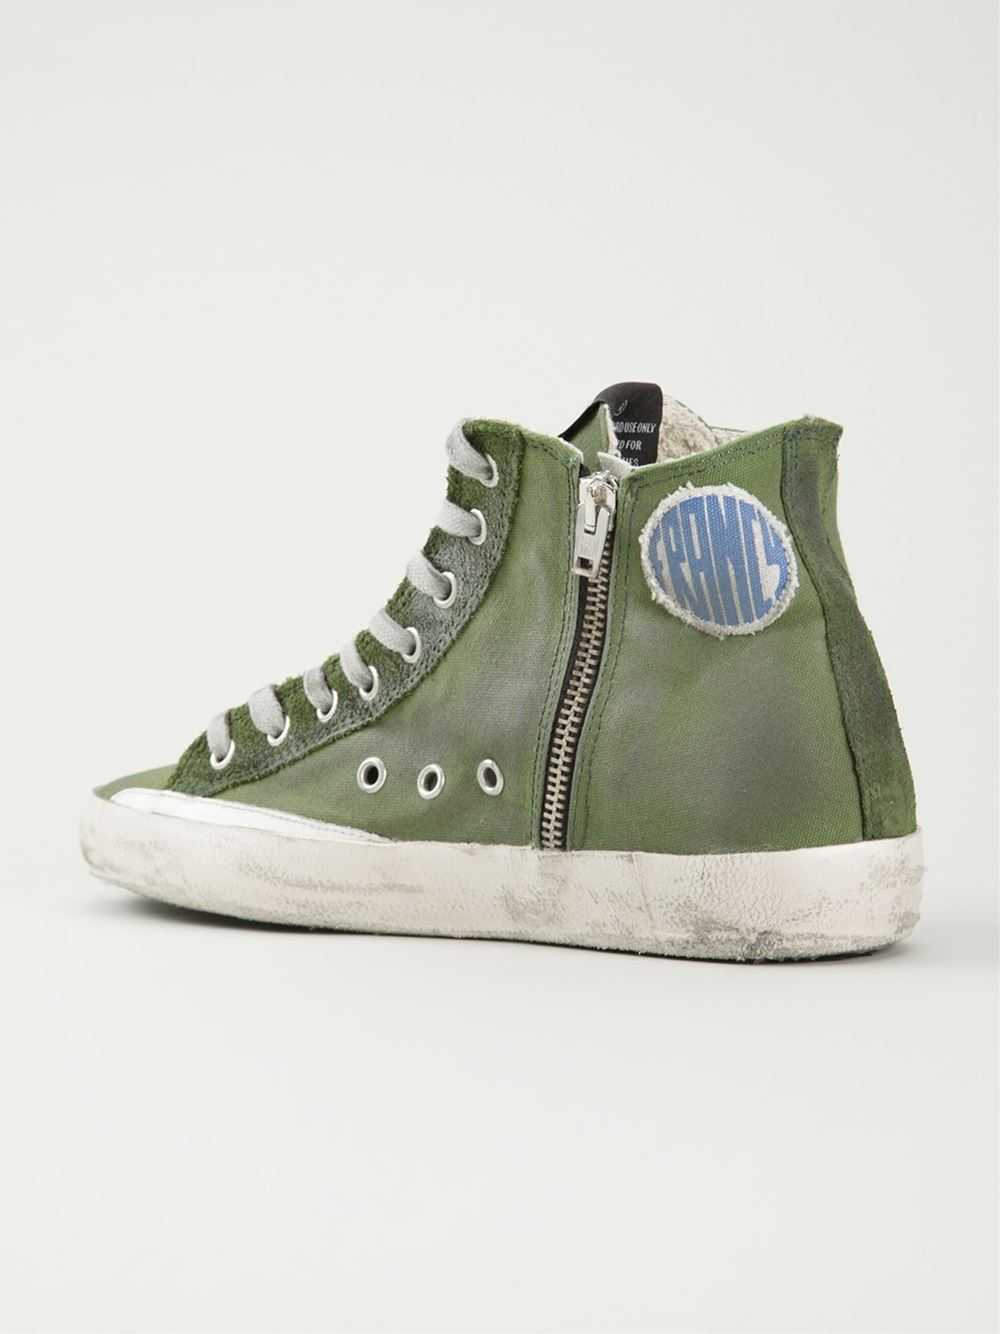 lyst golden goose deluxe brand francy high top sneakers in green. Black Bedroom Furniture Sets. Home Design Ideas